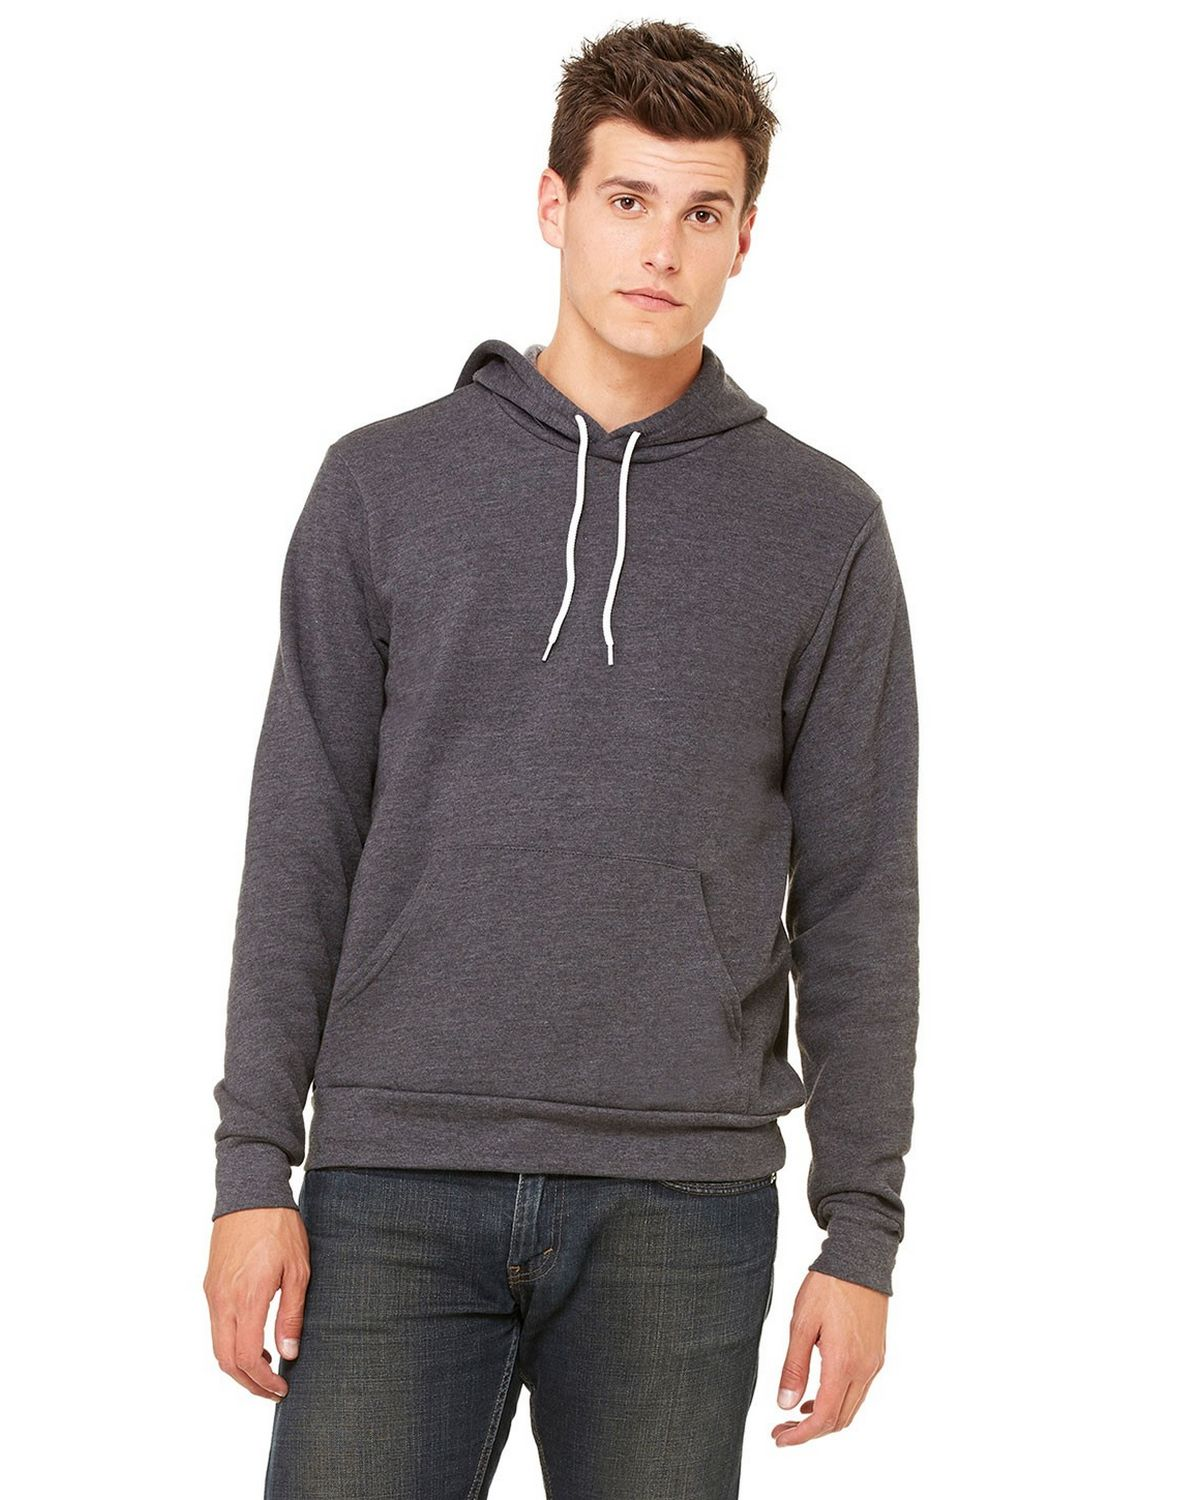 Bella + Canvas 3719 Unisex Poly Cotton Fleece Pullover Hoodie - Dark Grey Heather - S 3719